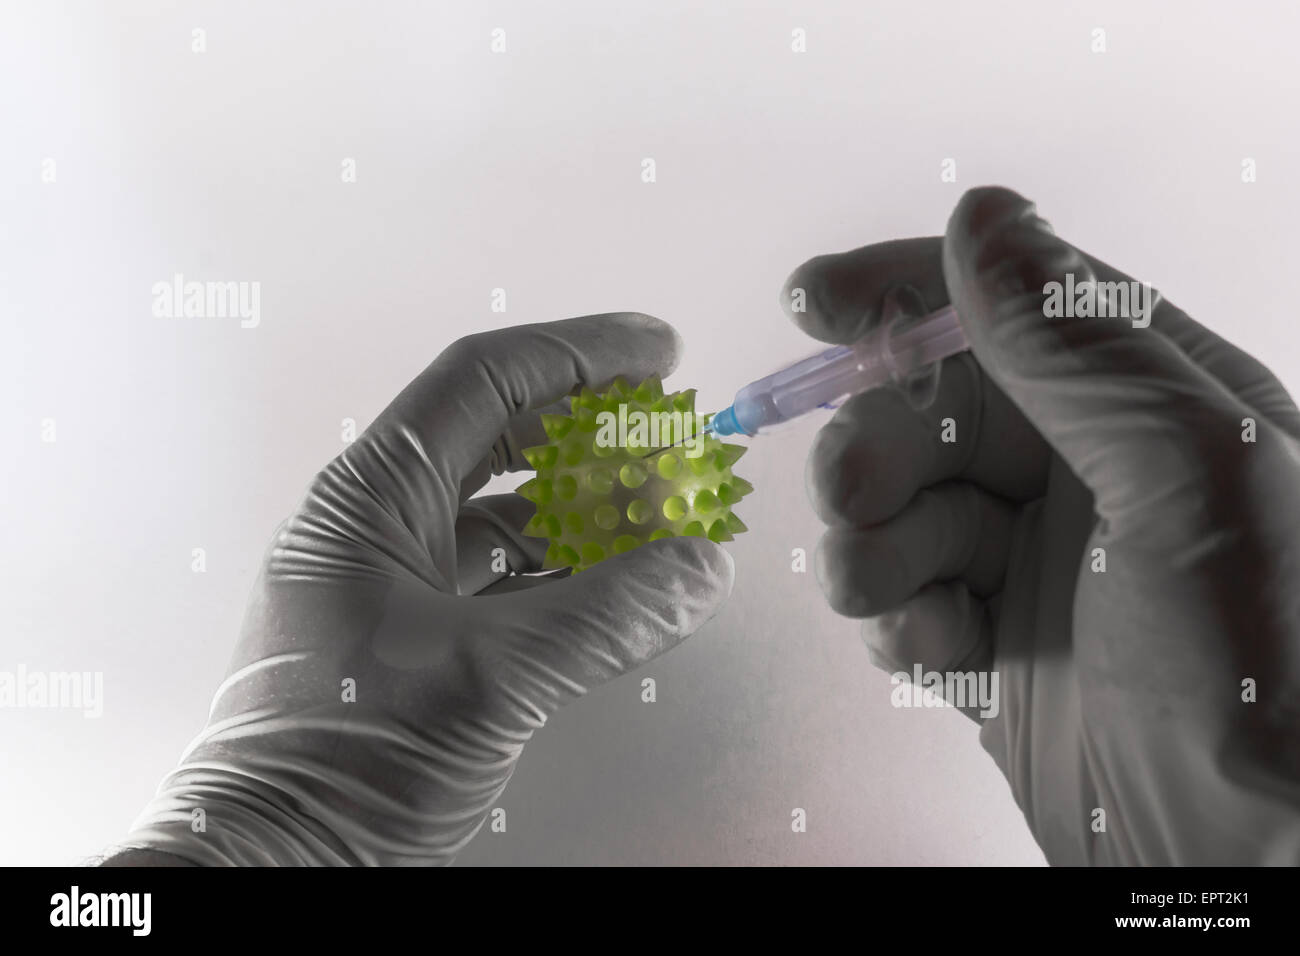 Two latex clad hands injecting a hypodermic syringe into a large green virus on white background Stock Photo